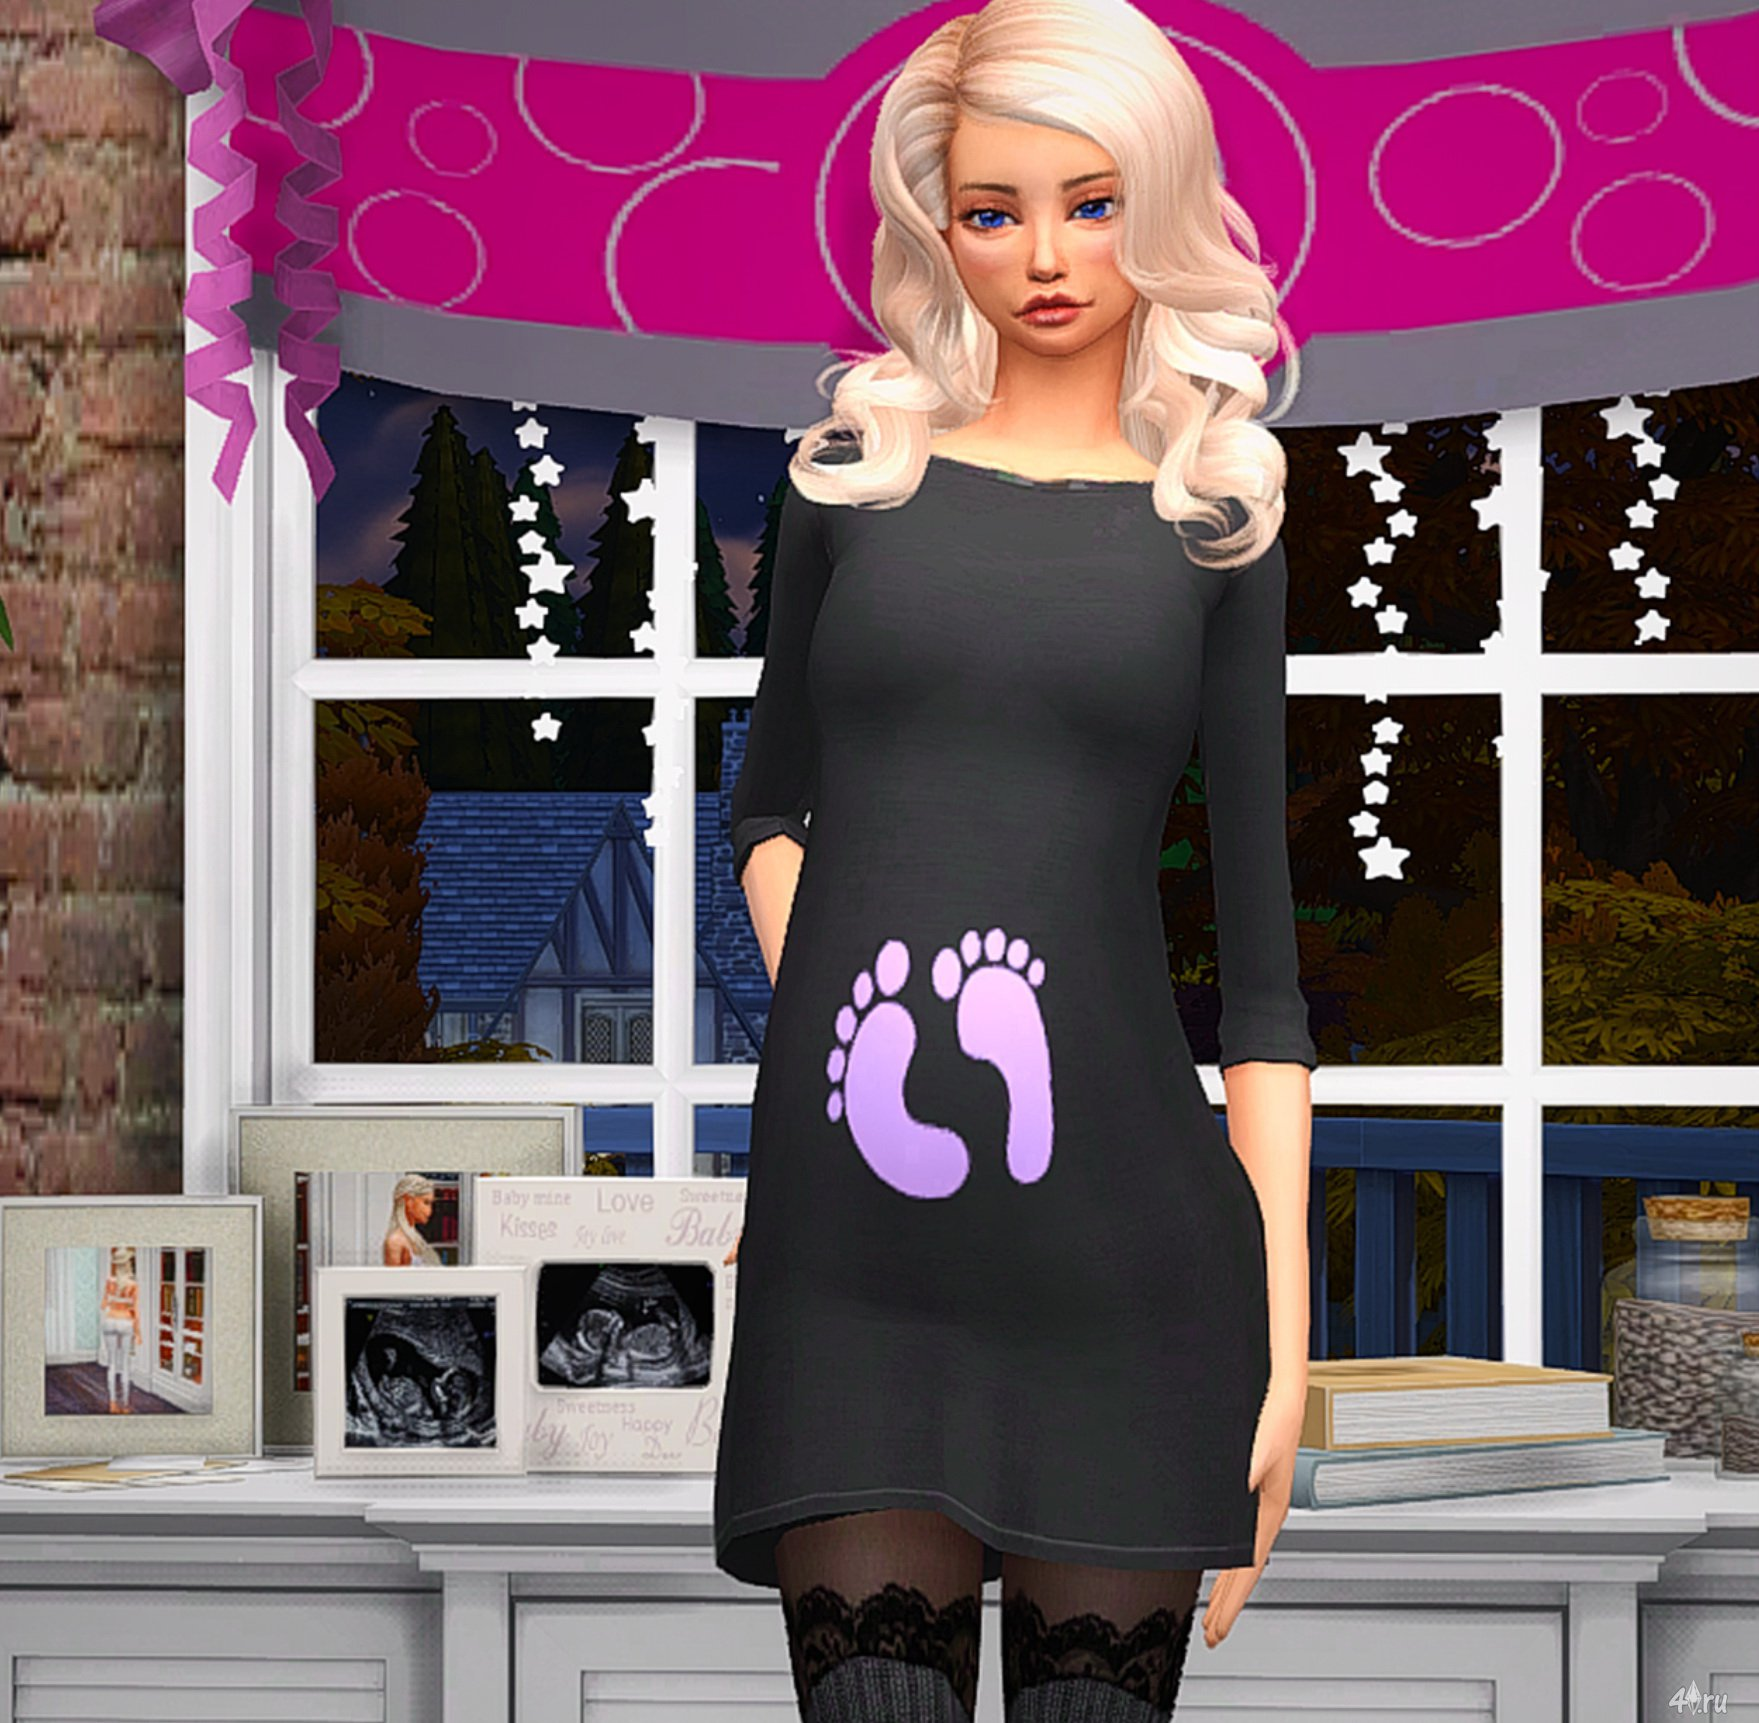 Downloads / Sims 2 / Sets / Fashion Mix - The Sims Resource 41